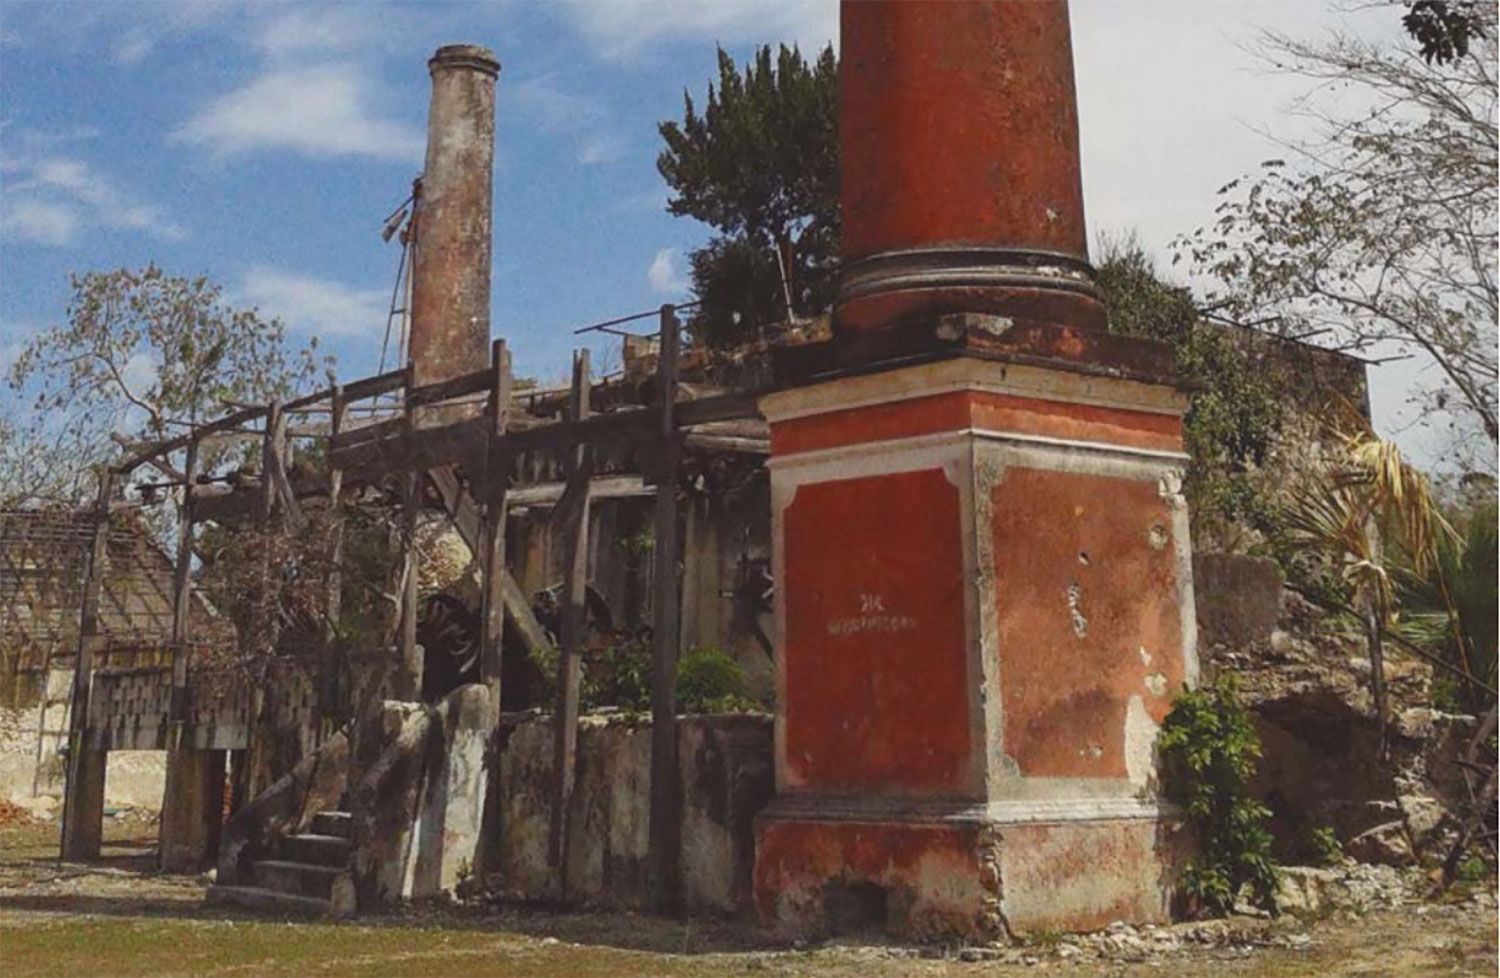 The state of the hacienda before the purchase by the current owner.